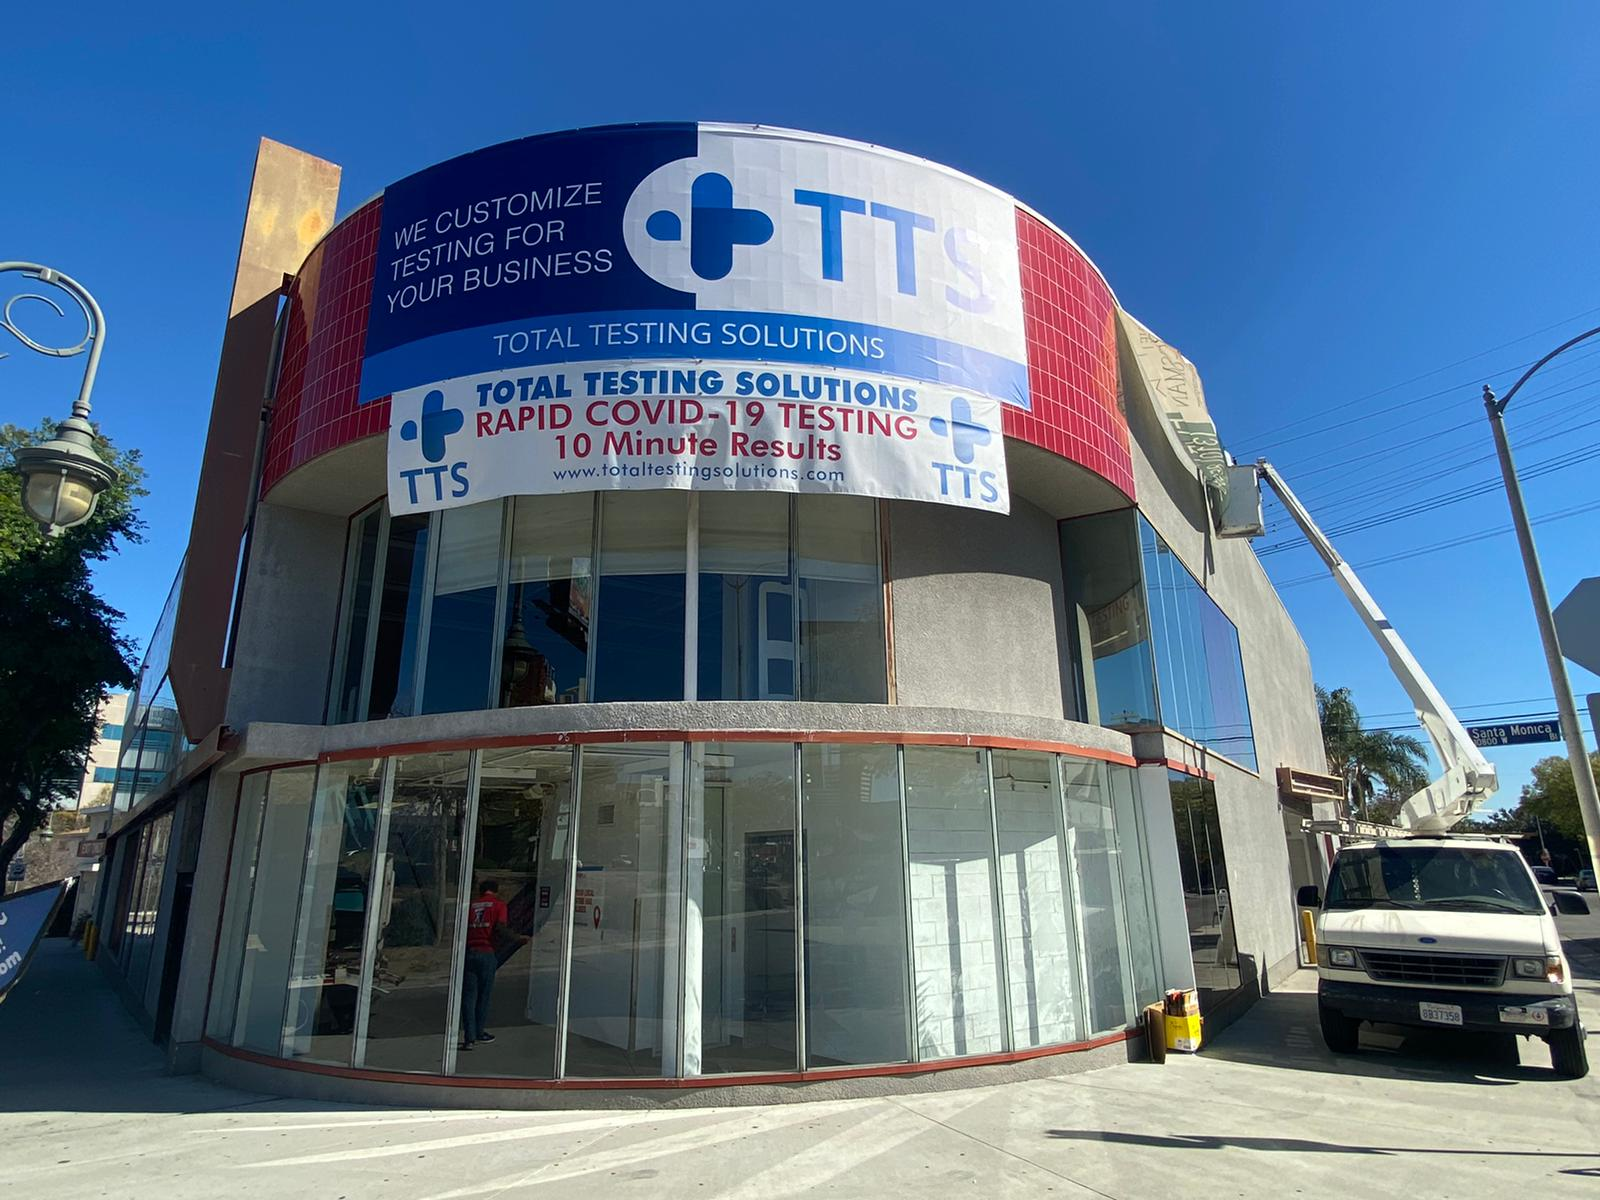 This is the giant banner and smaller banner we fabricated and installed for Total Testing Solutions' West Los Angeles location.